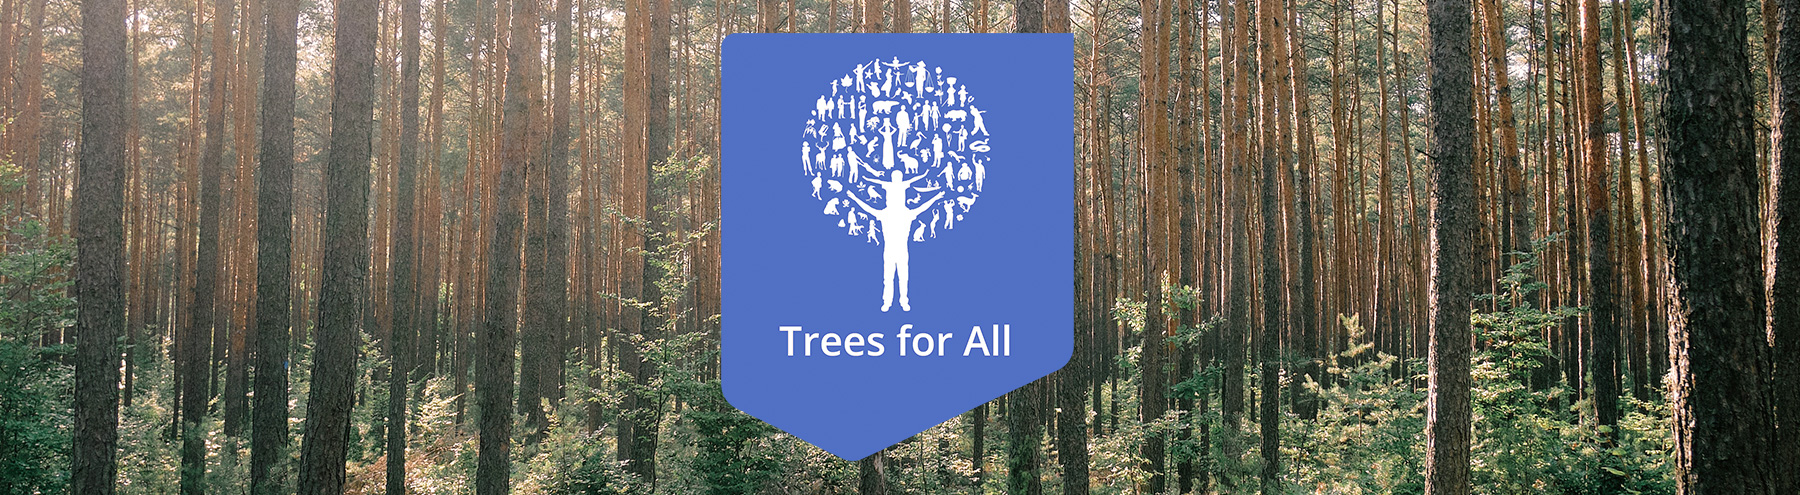 trees for all beeld